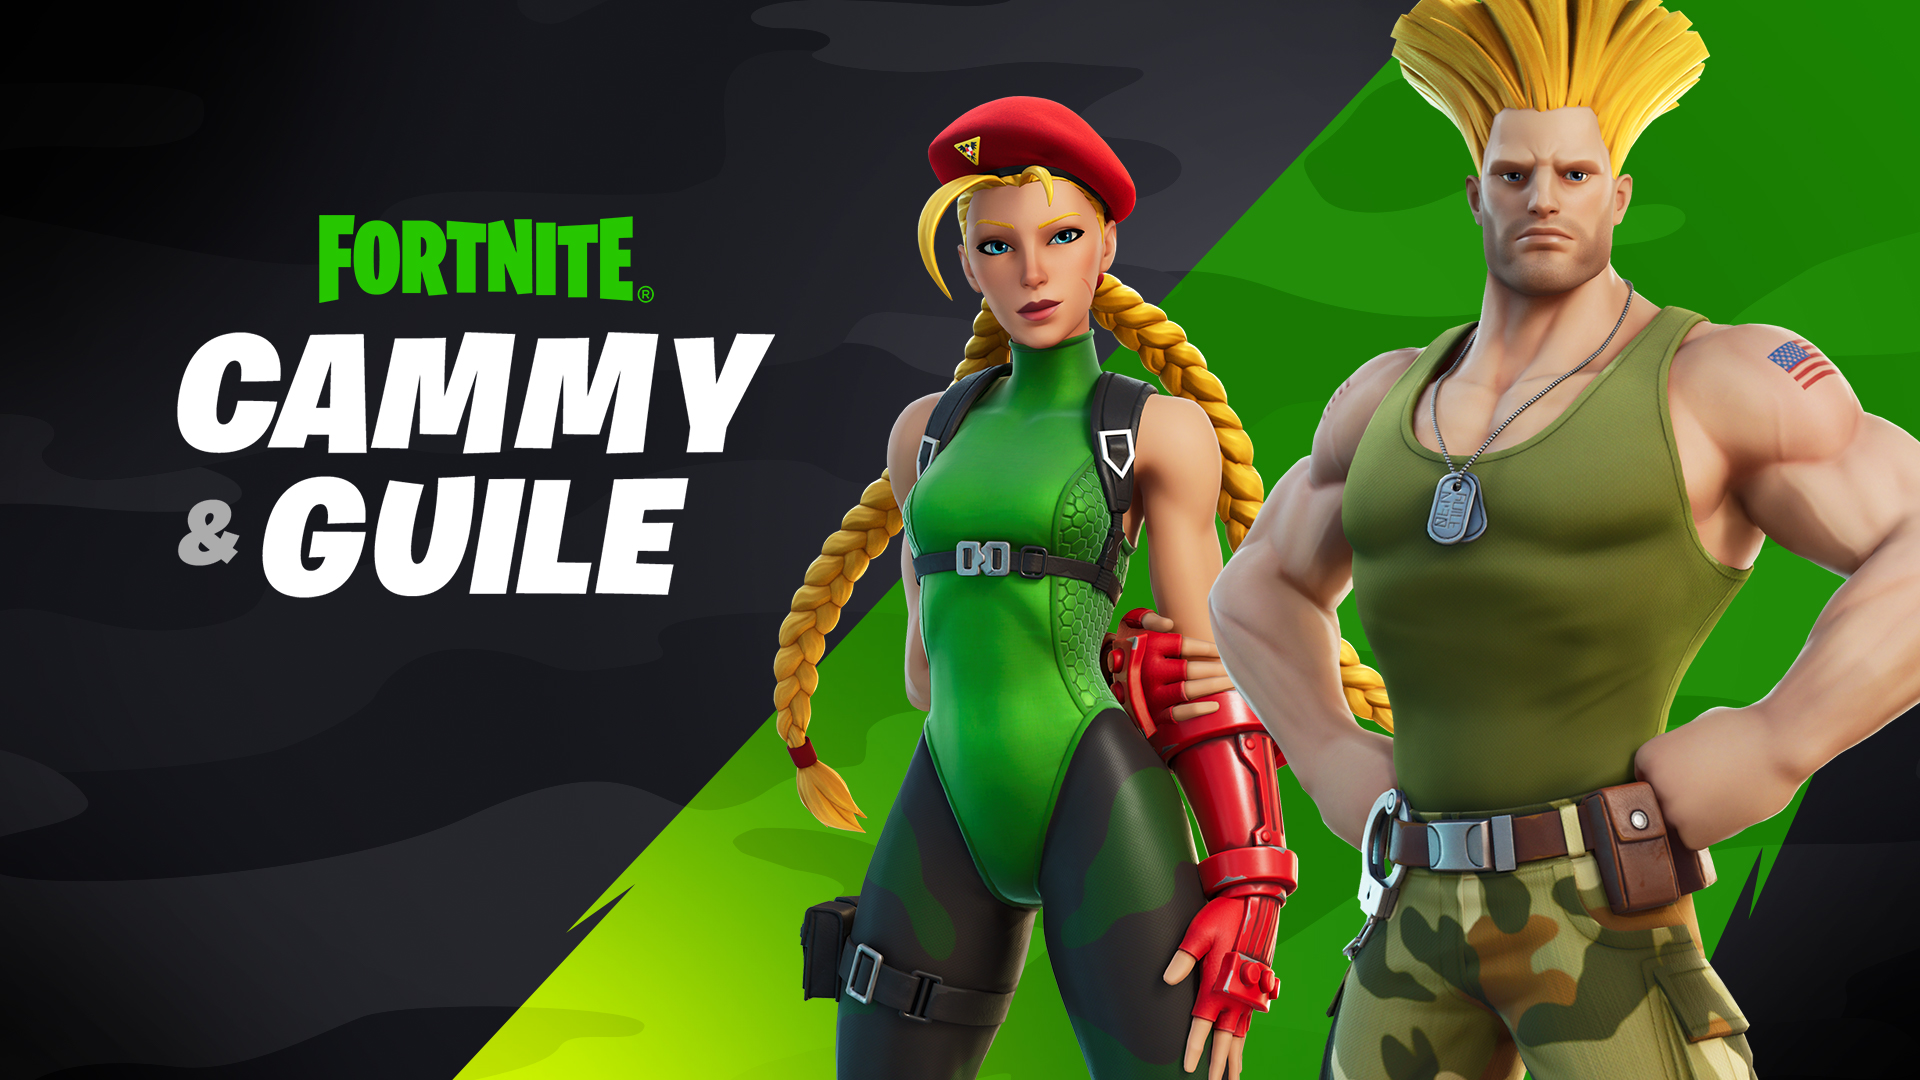 fortnite cammy and guile